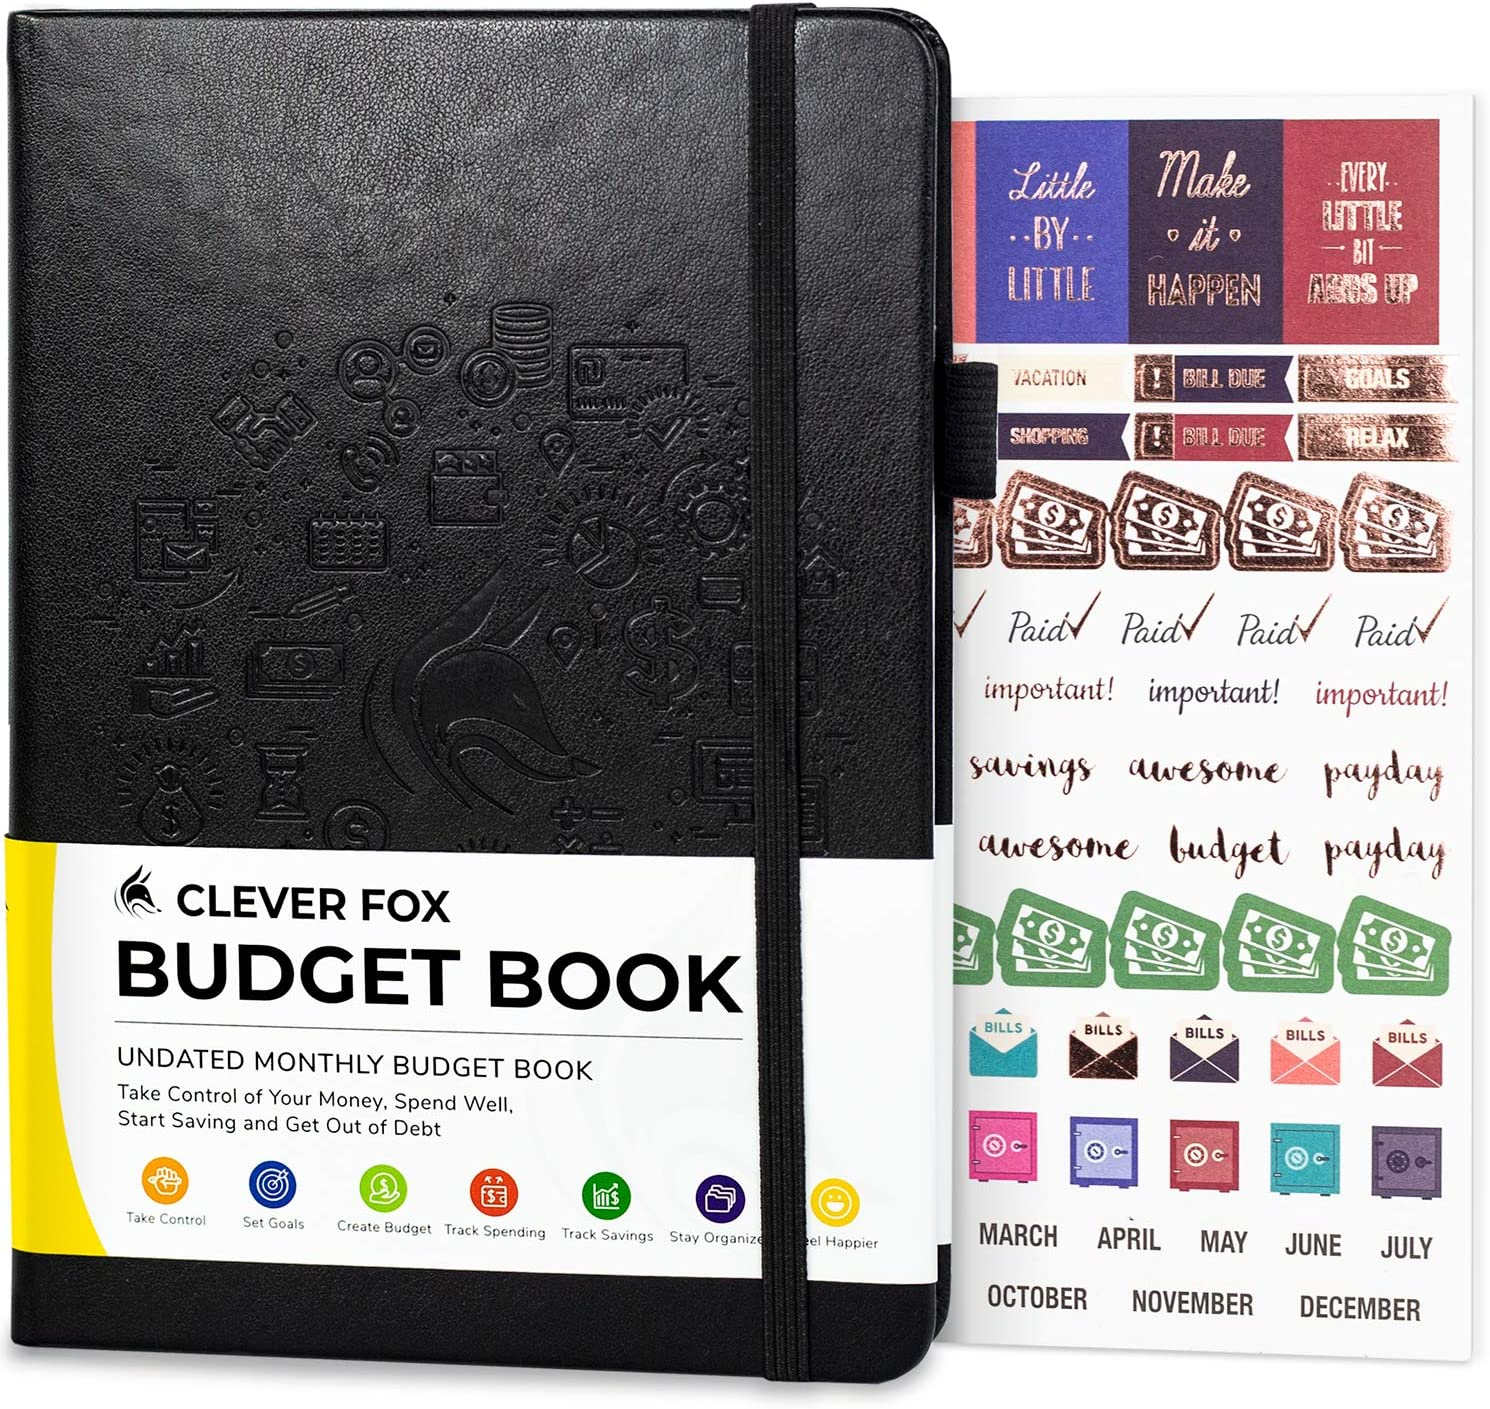 "Clever Fox Budget Book - Financial Planner Organizer & Expense Tracker Notebook. Money Planner Account Book for Household Monthly Budgeting and Personal Finance. Compact Size (5.3"" x 7.7"") - Black"